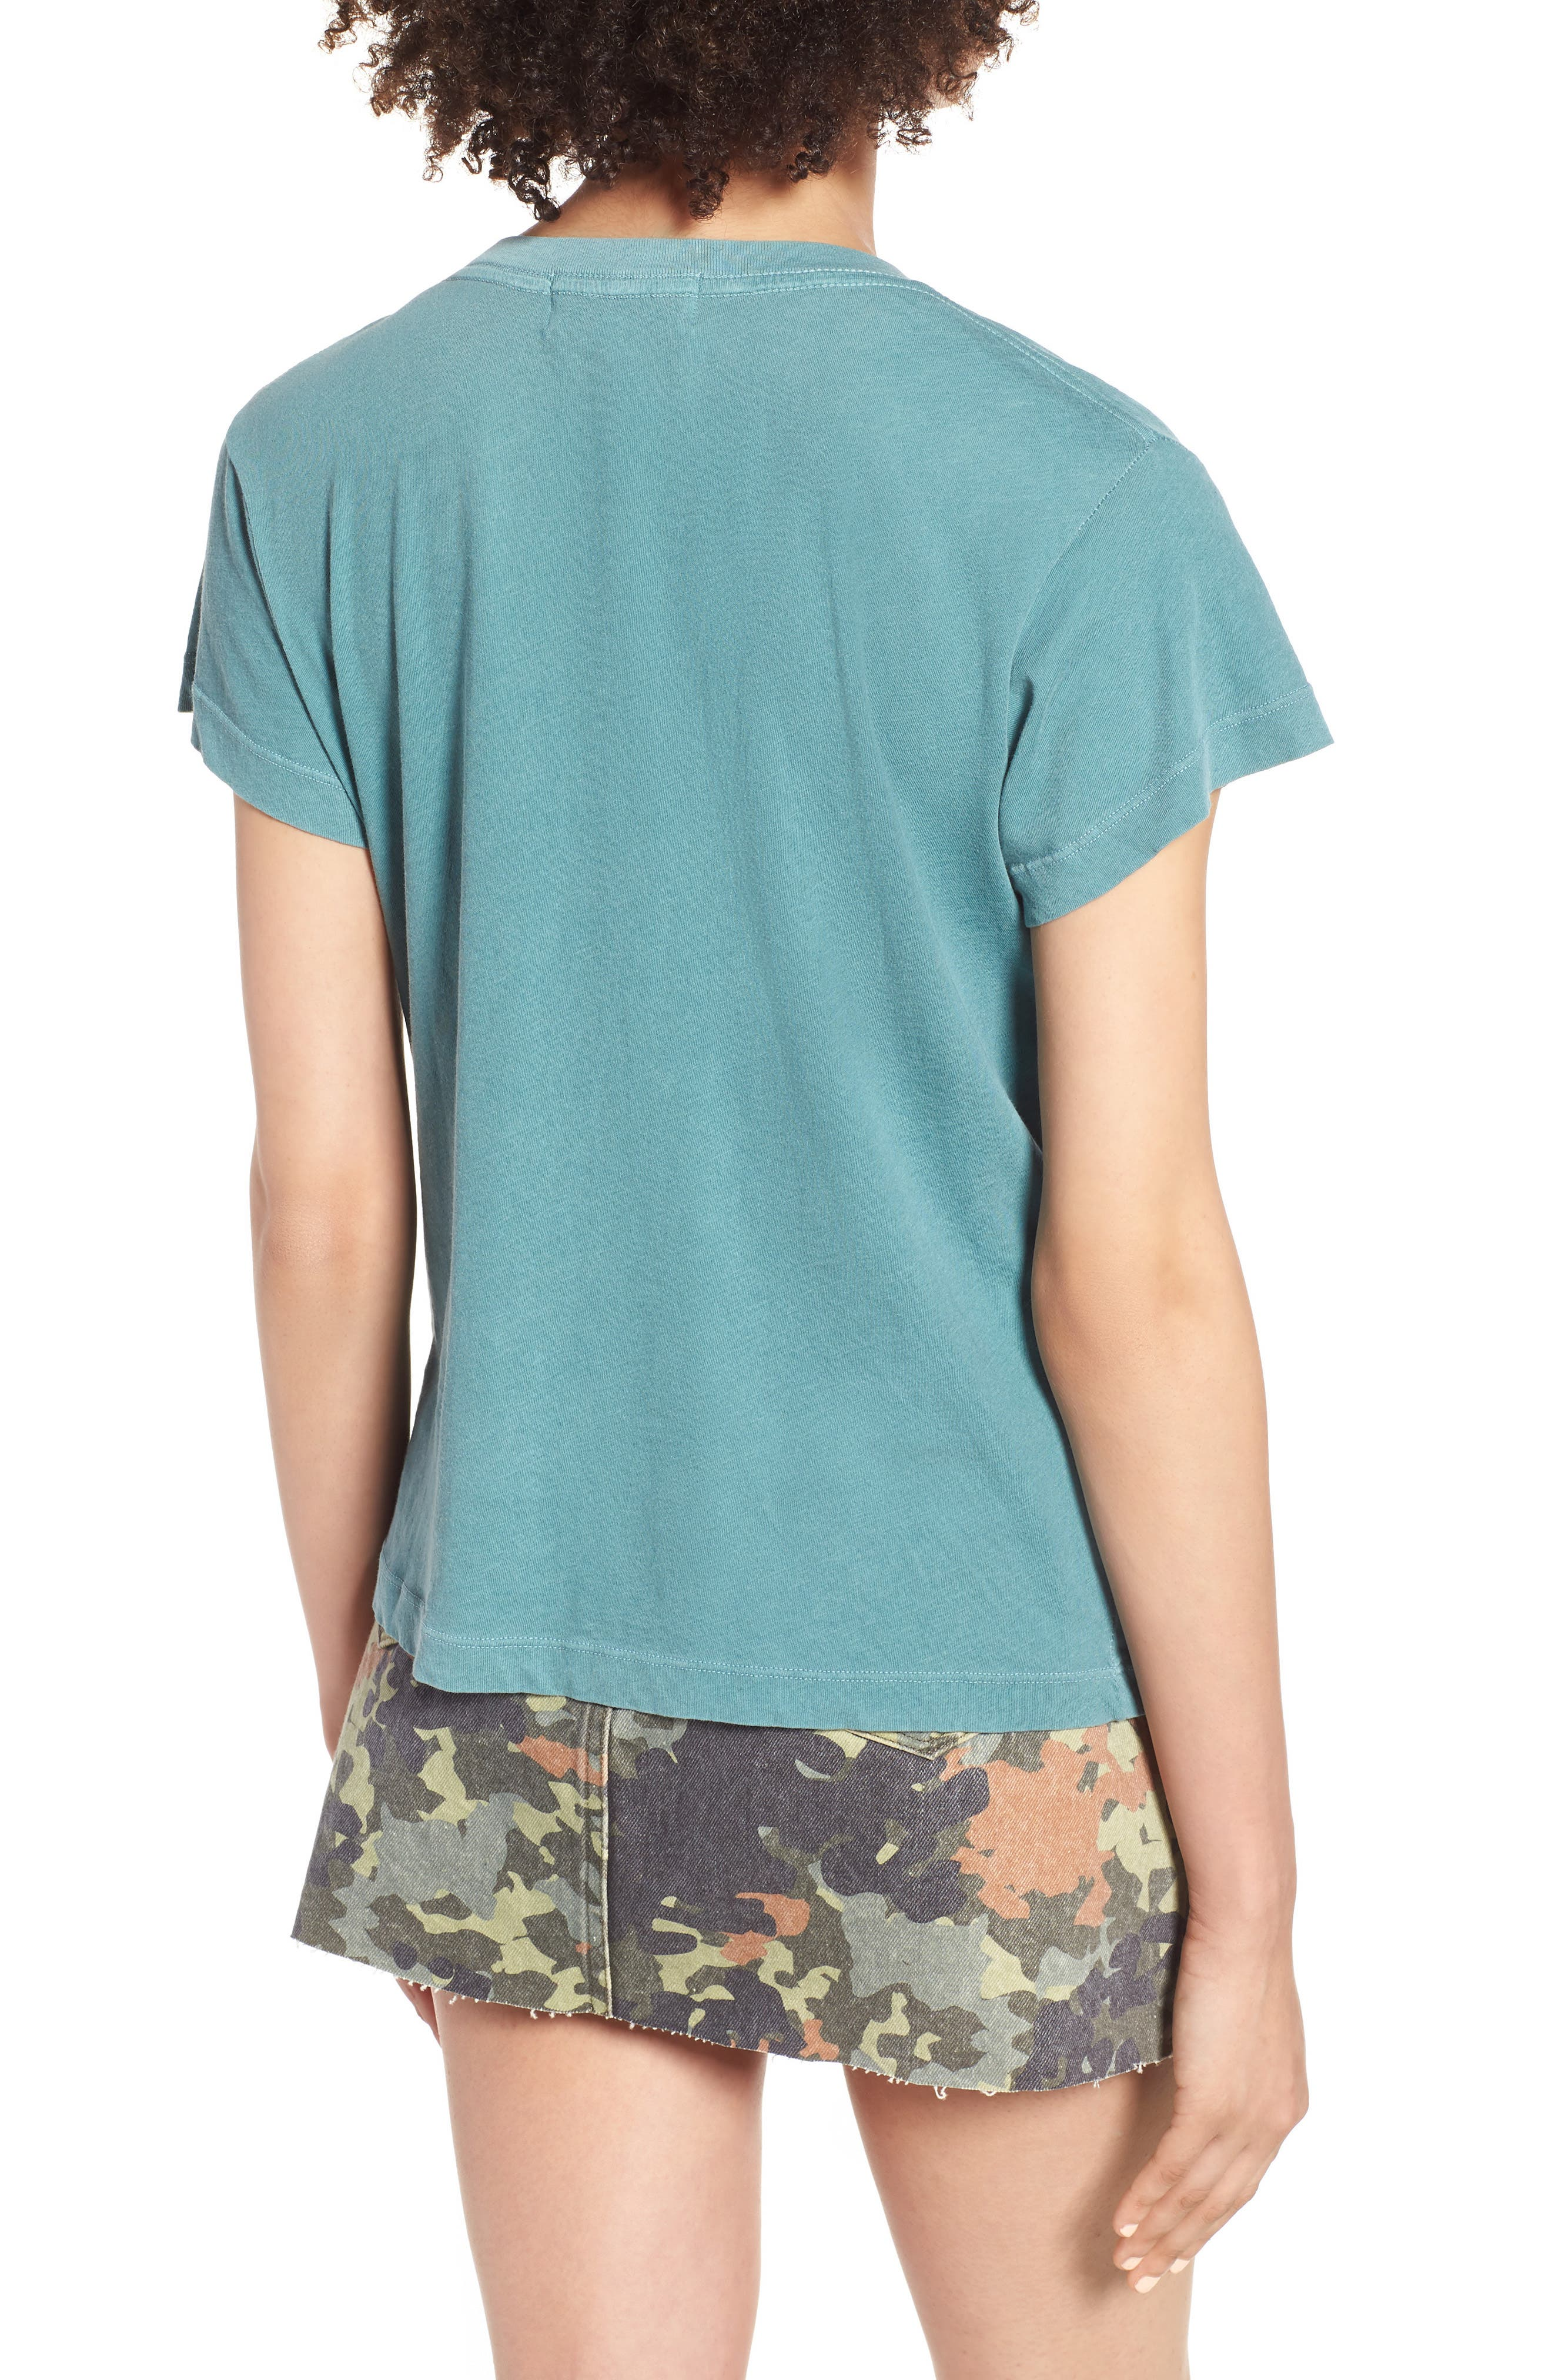 St. Barts Tee,                             Alternate thumbnail 2, color,                             PIGMENT GREEN TROPICS